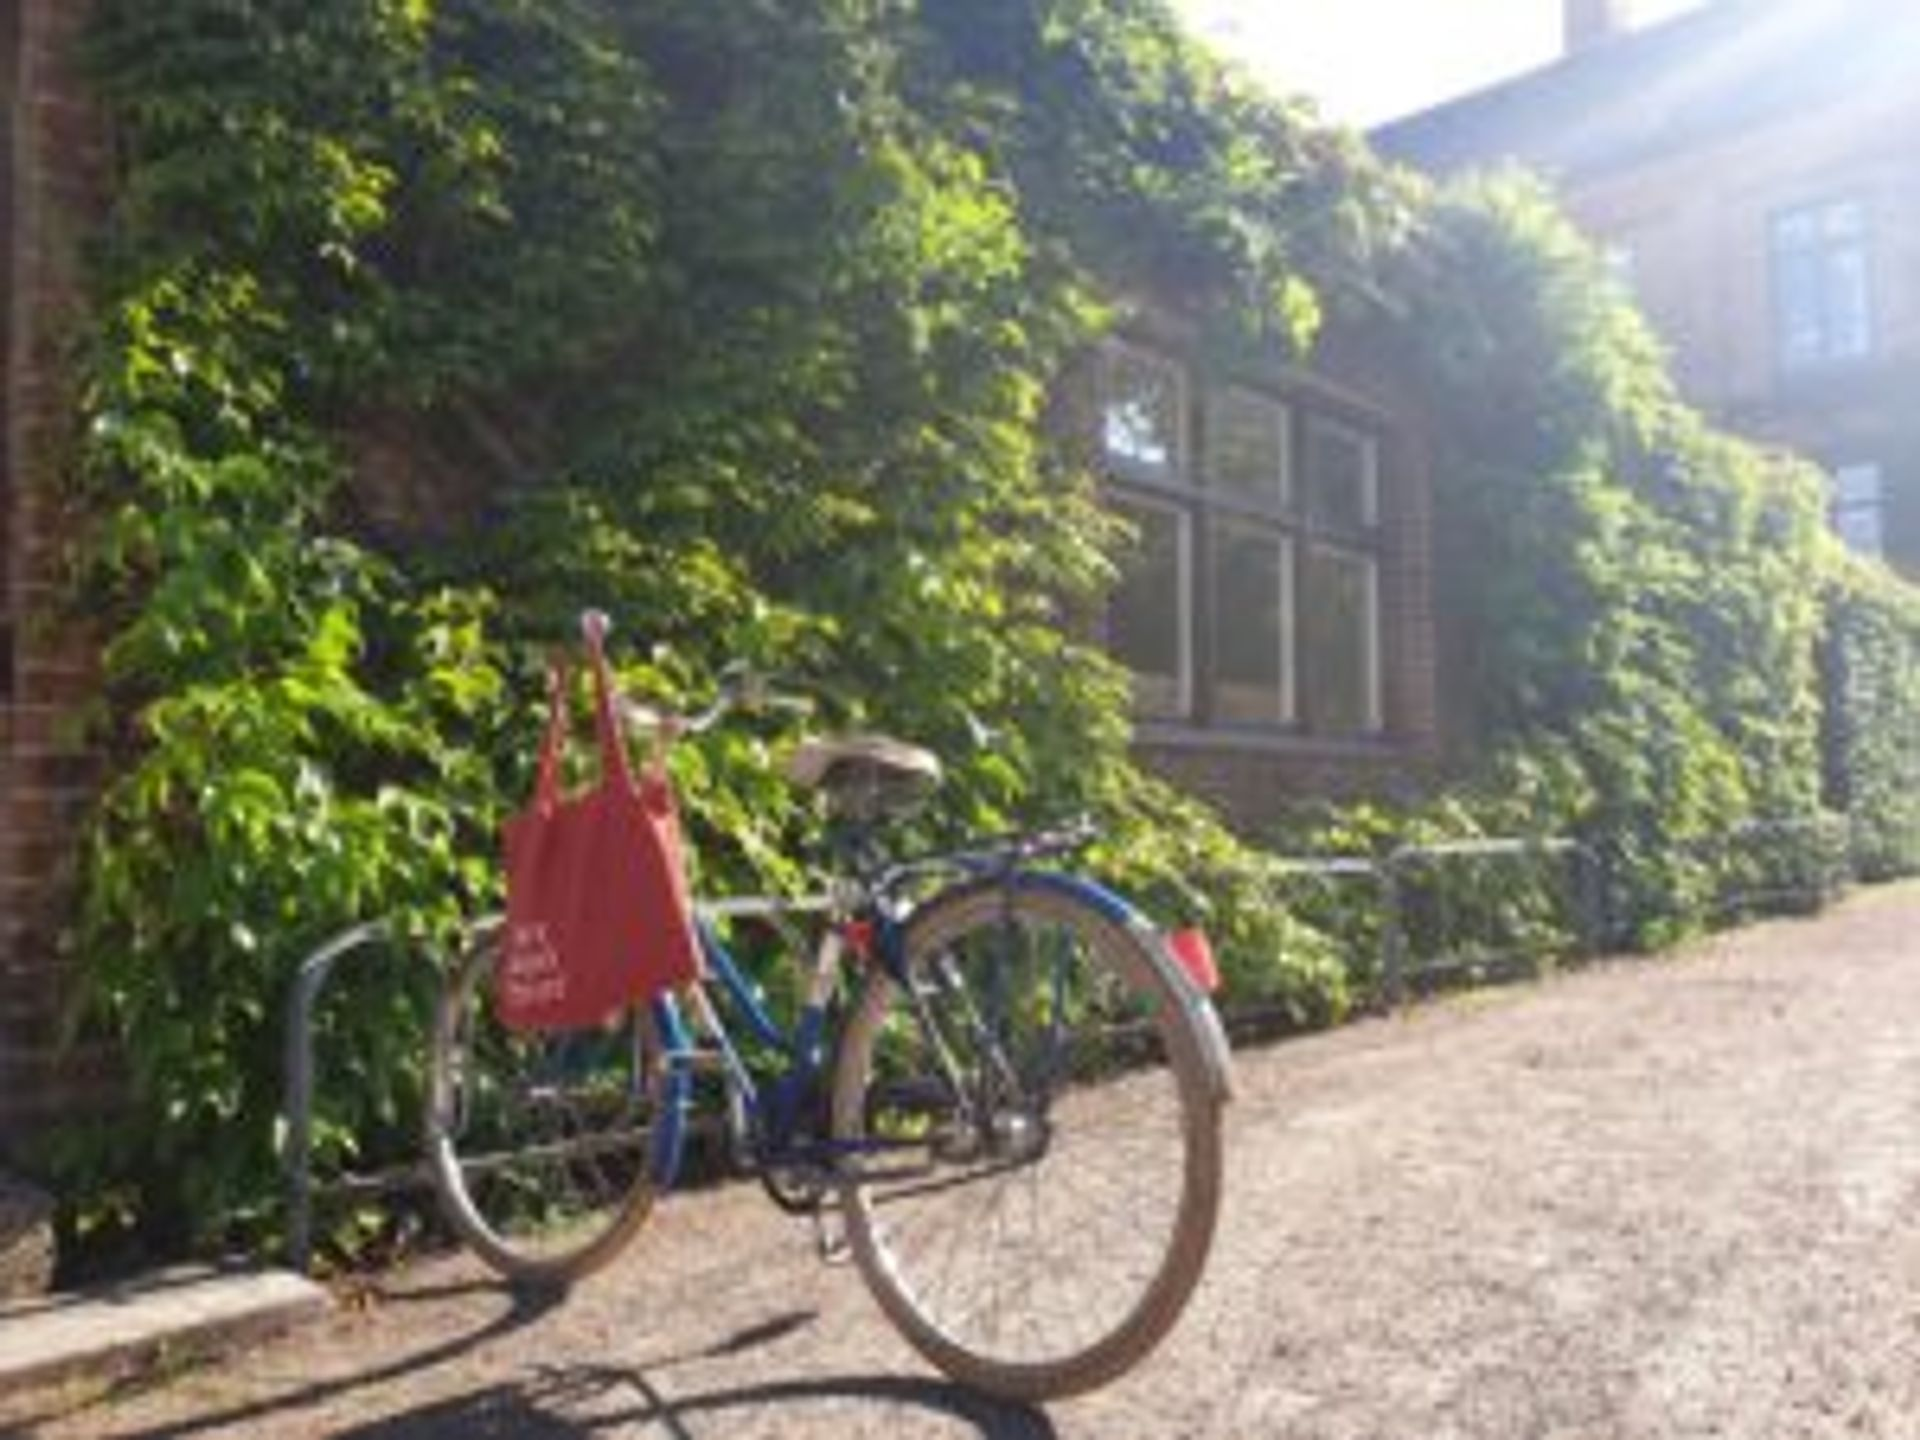 A blue bike parked in bicycle stands outside of a ivy-covered building.